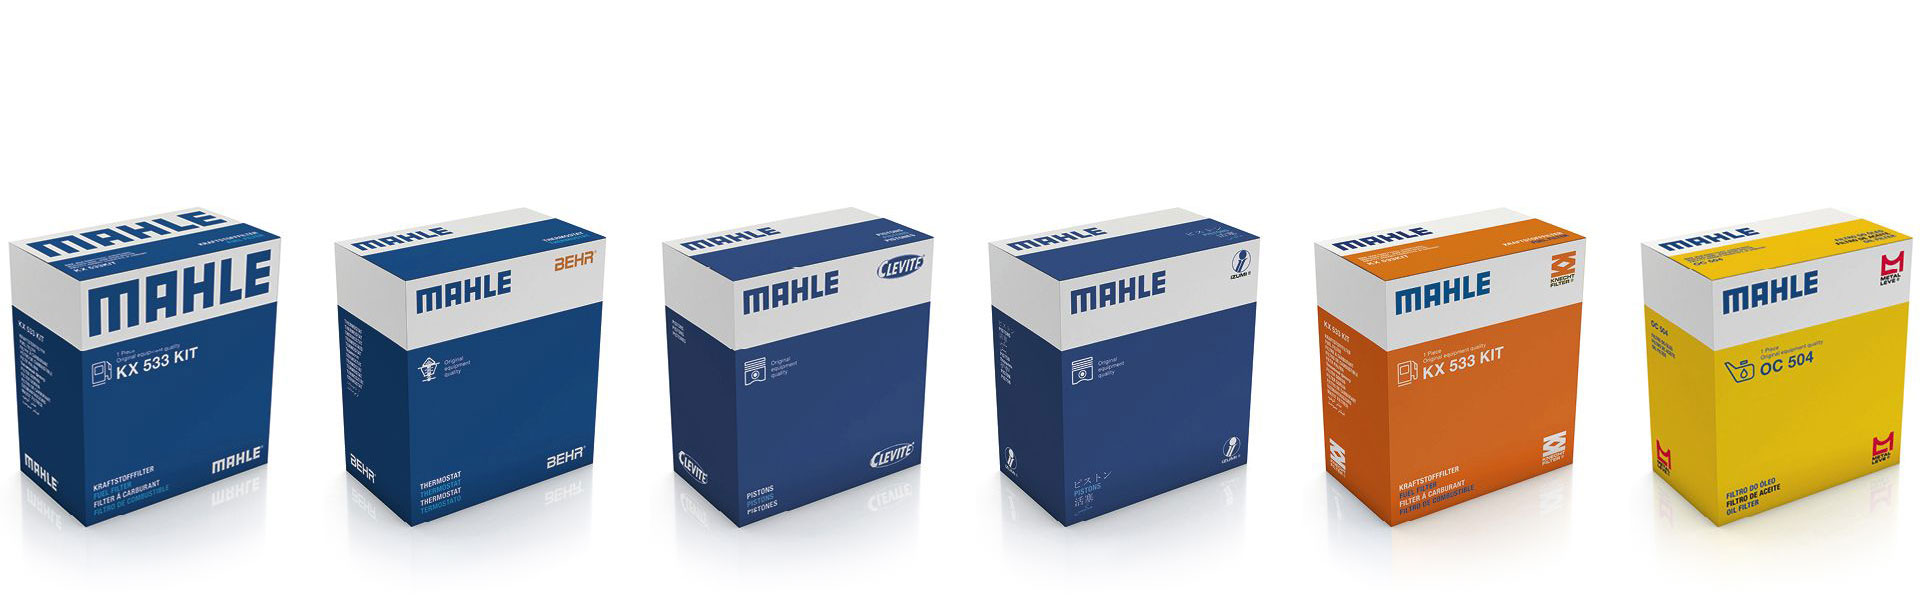 Mahle to Use New Packaging from 2019